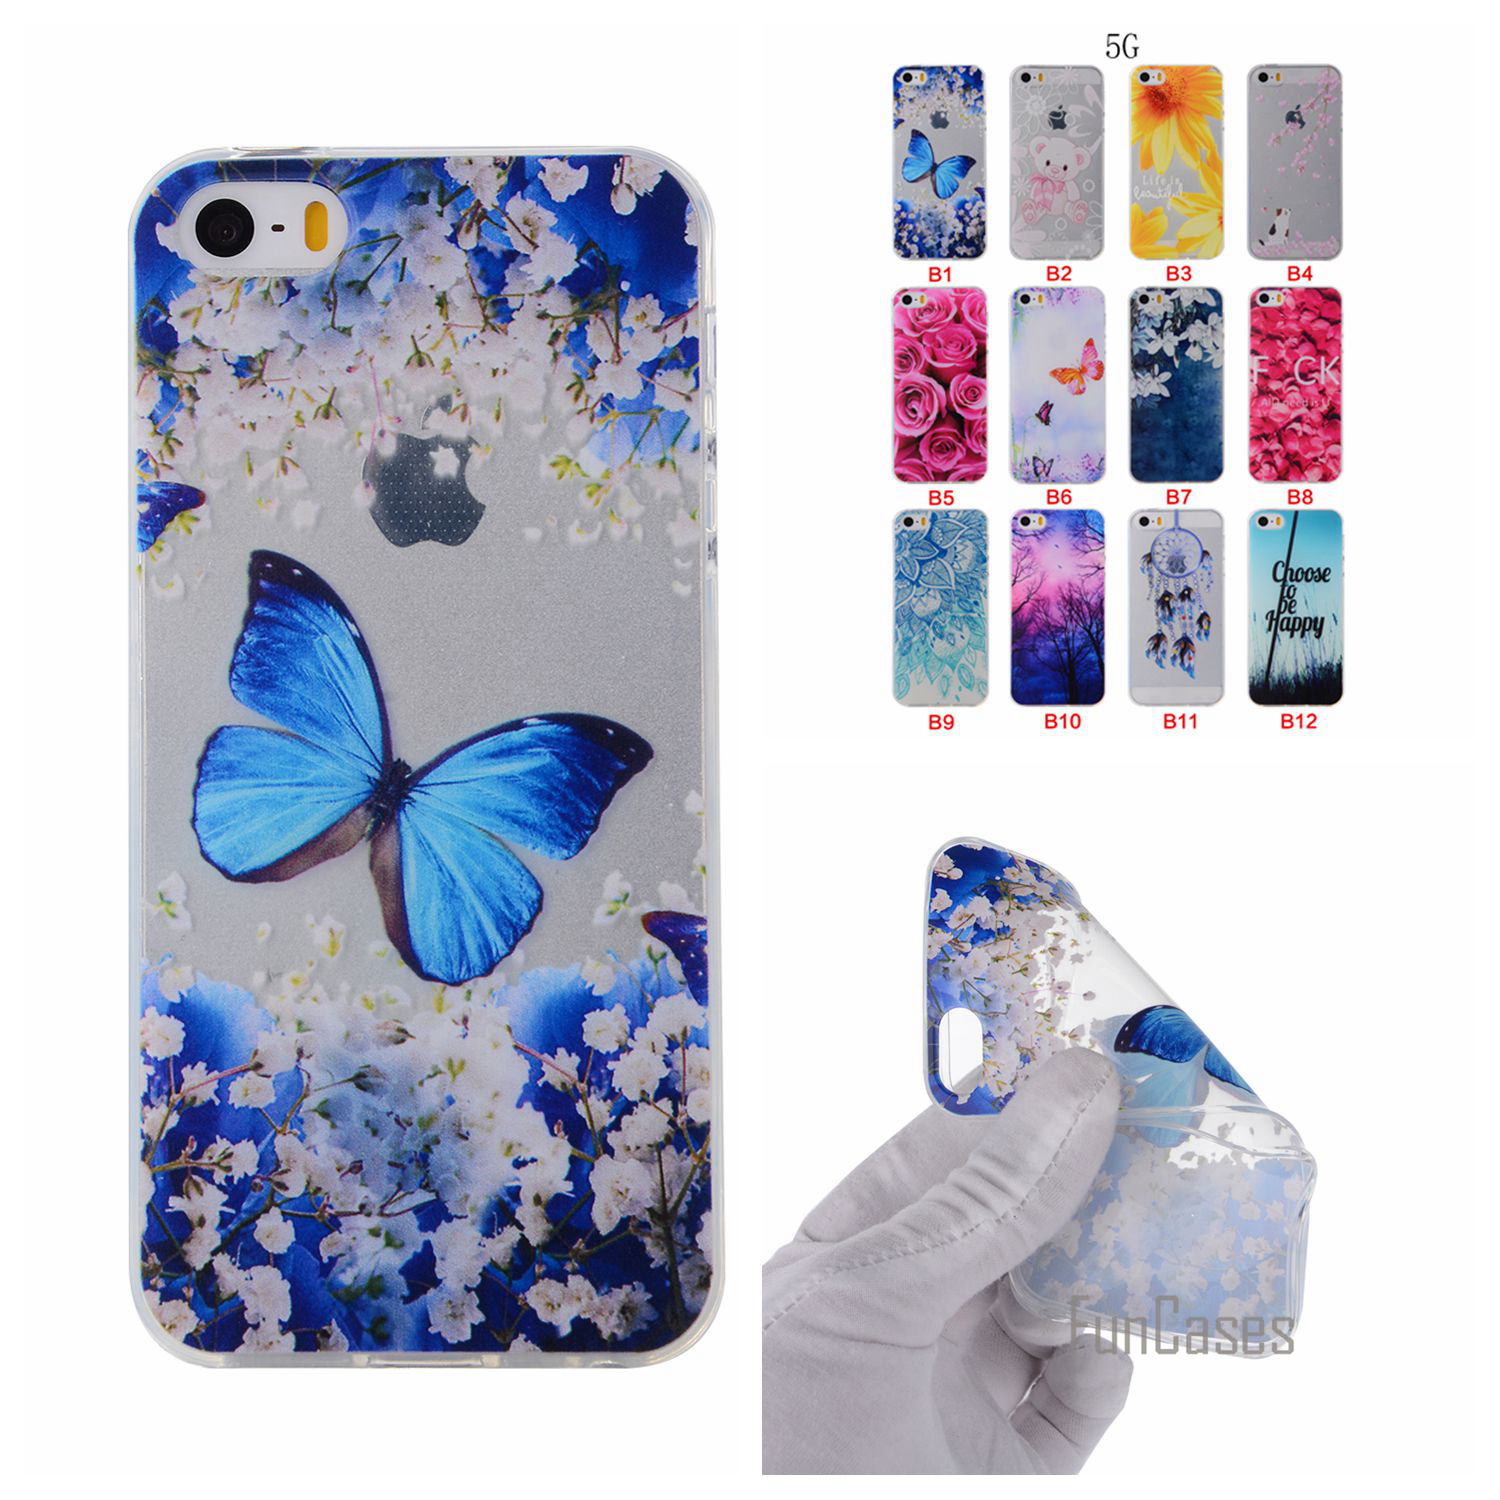 Cartoon Flower Butterfly Bear Tree Painted Back Cover Silicon Gel Soft TPU Mobile Phone Case For iPhone 5S coque 5 5S SE 5G capa